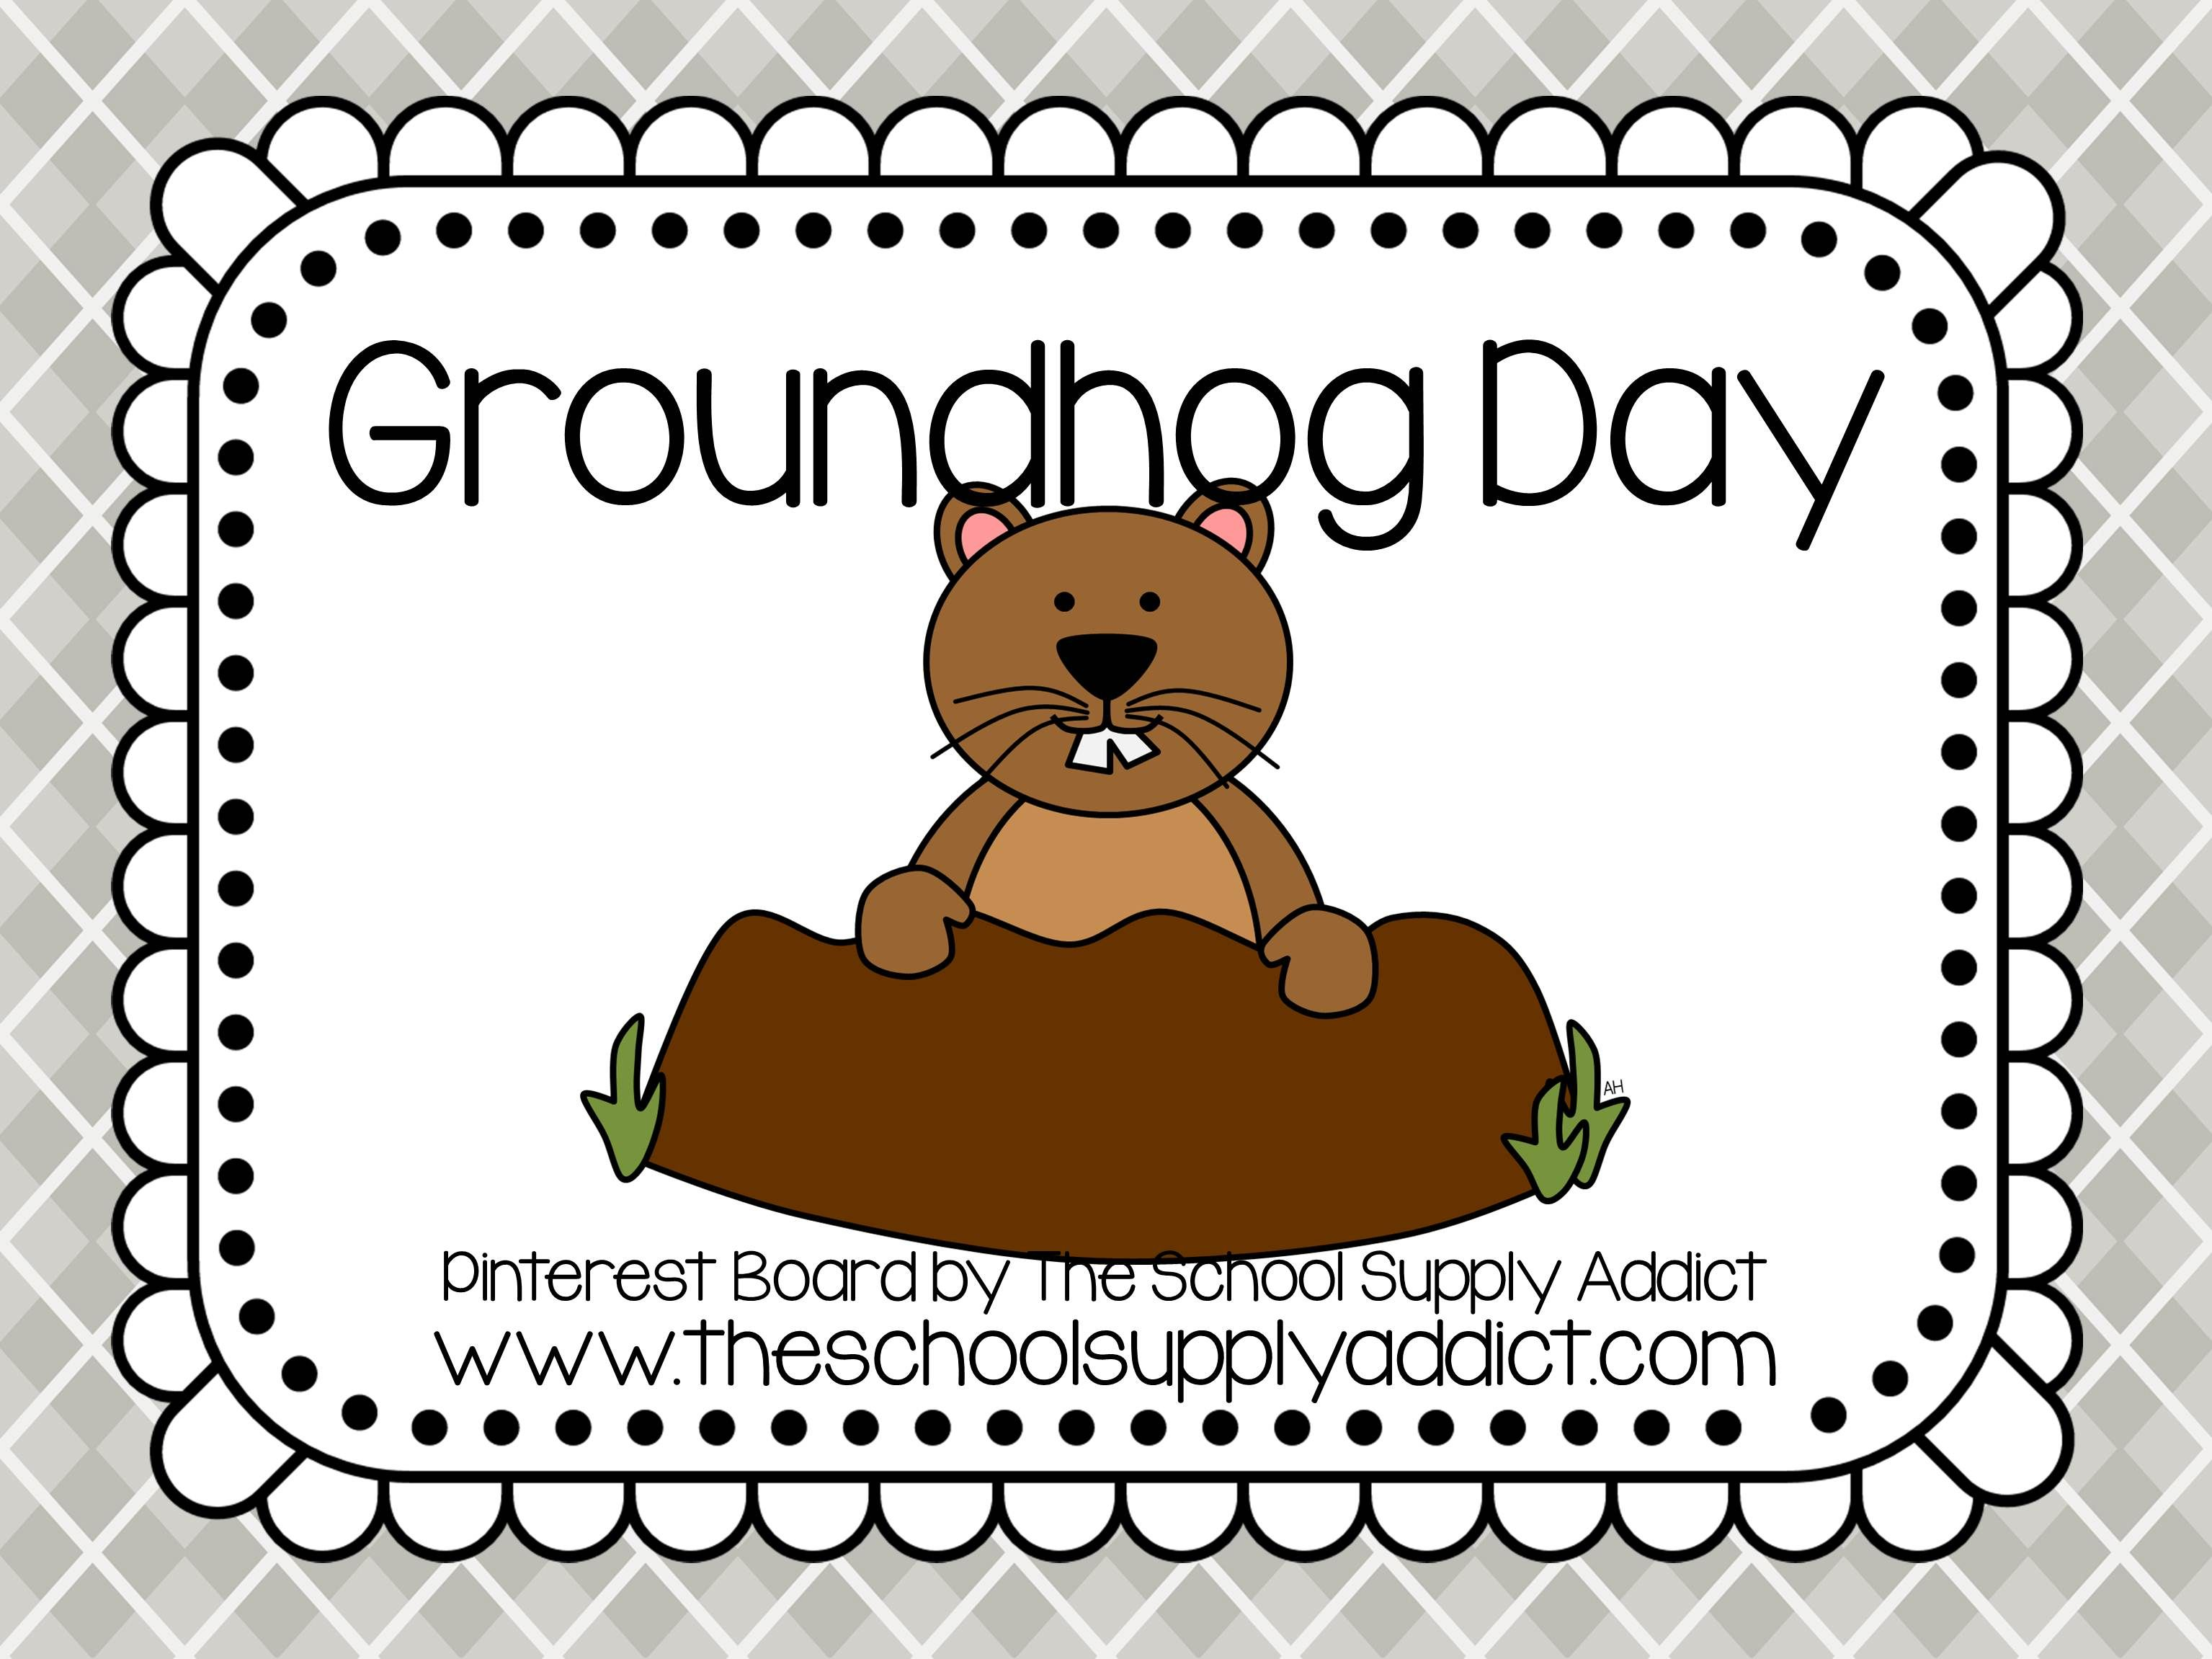 Groundhog Day Pin Board By The School Supply Addict